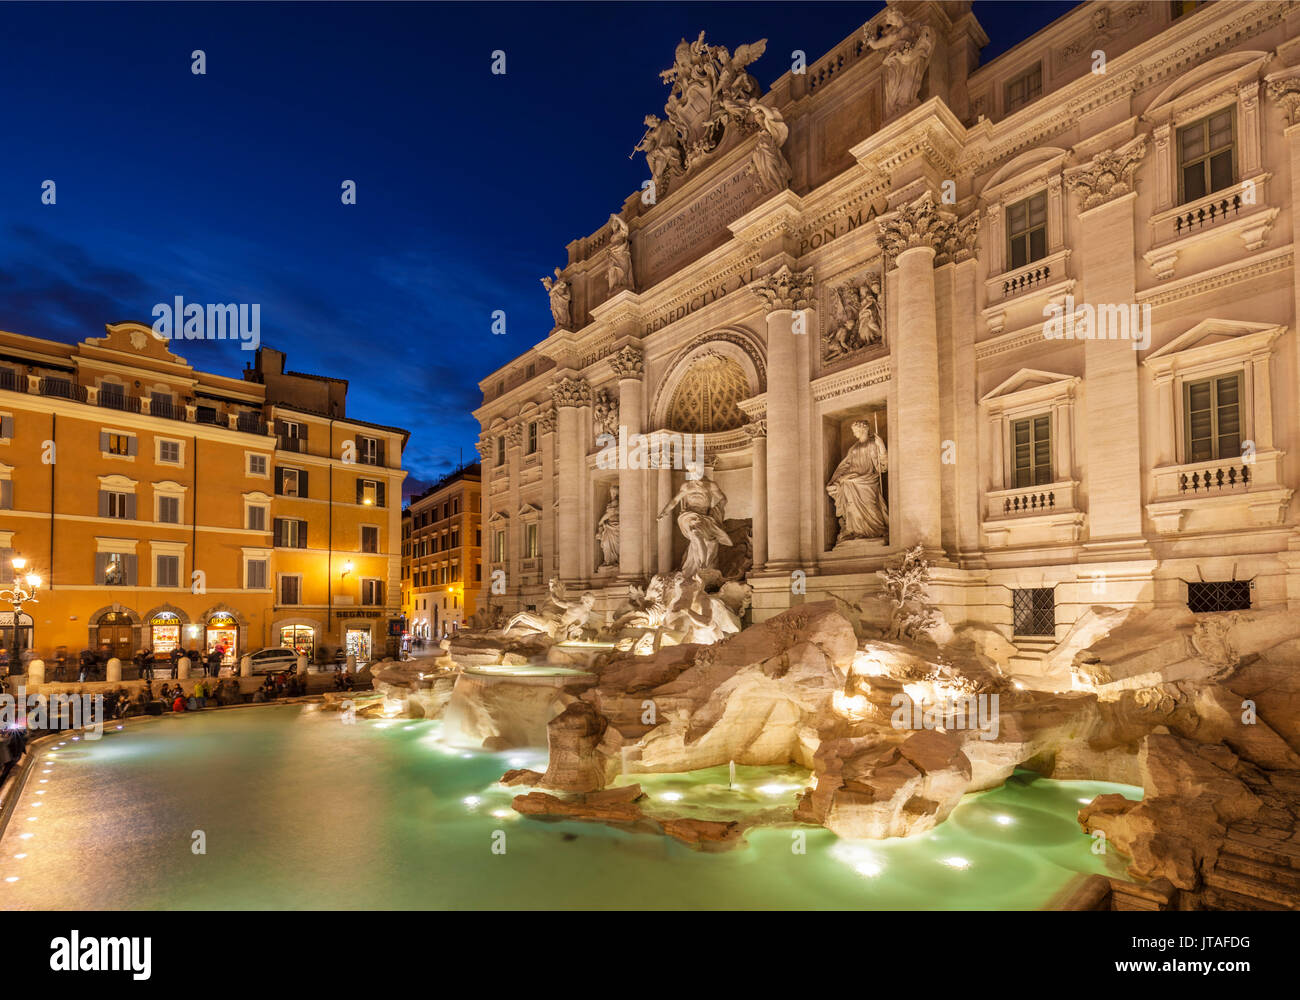 The Trevi Fountain backed by the Palazzo Poli at night, Rome, Lazio, Italy, Europe - Stock Image